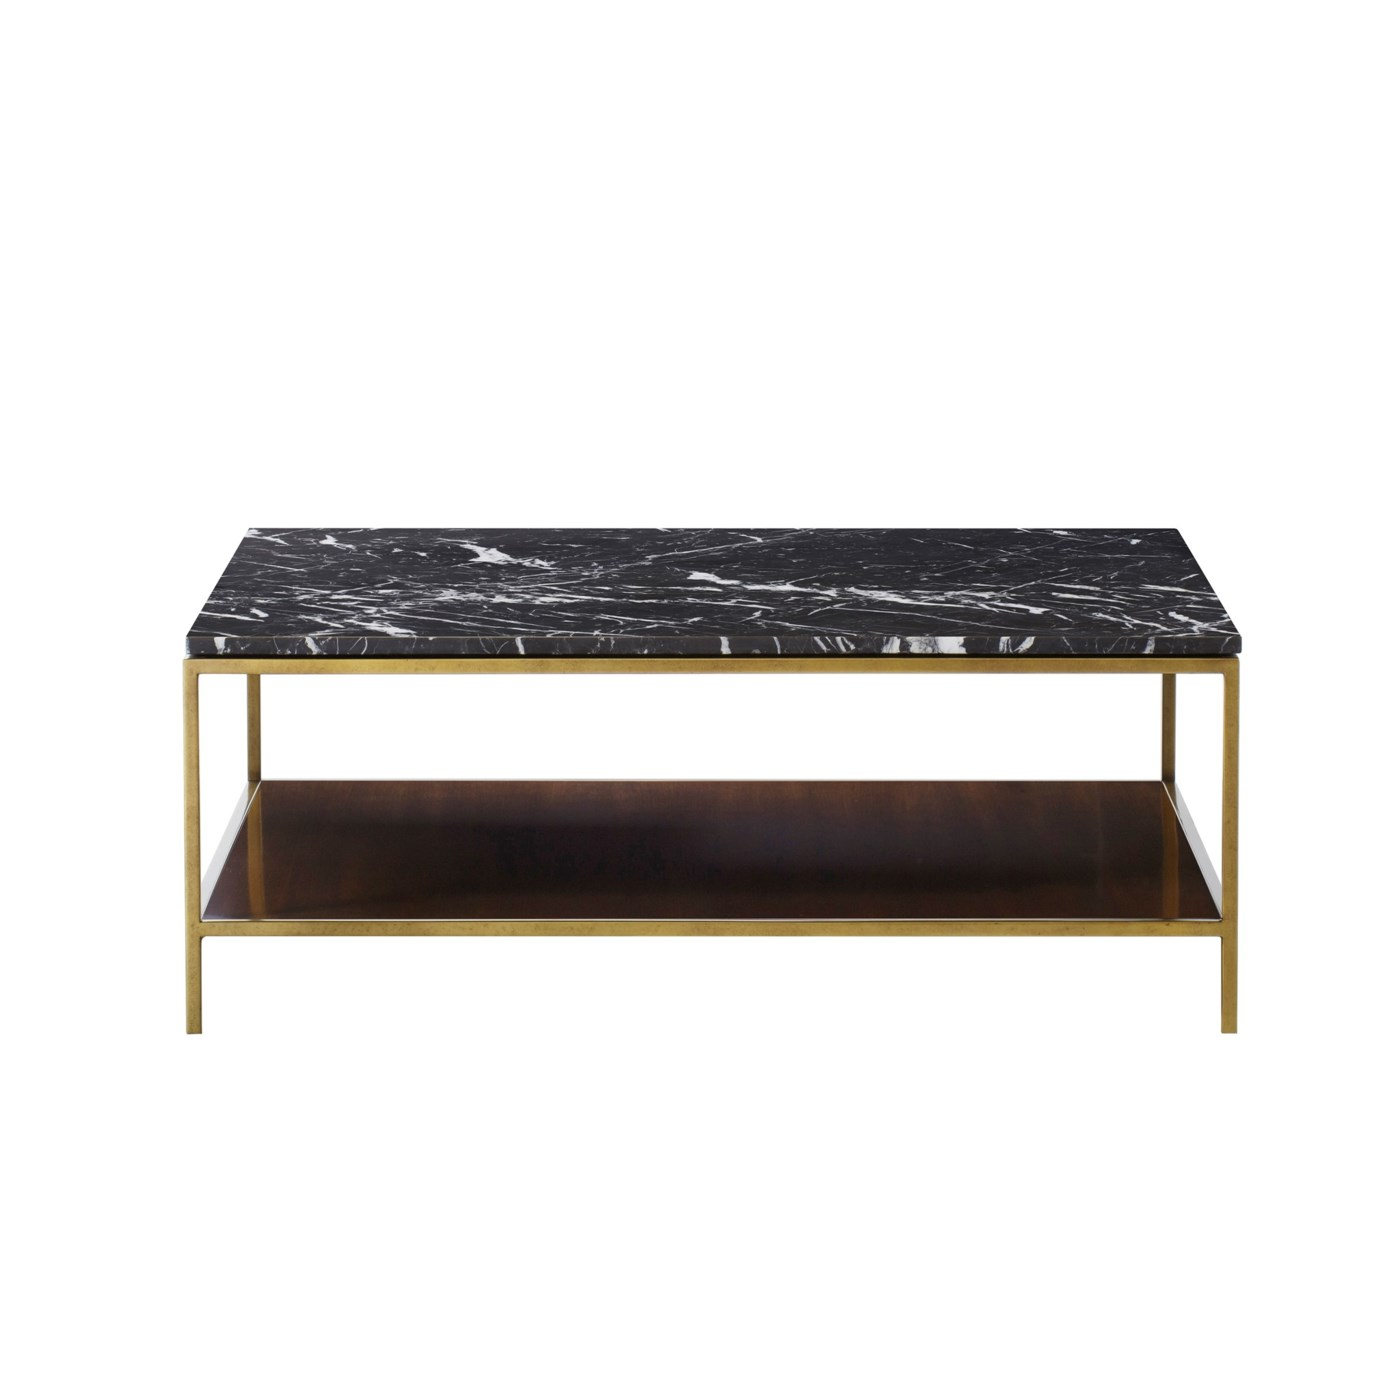 Copeland Coffee Table - Square / Large